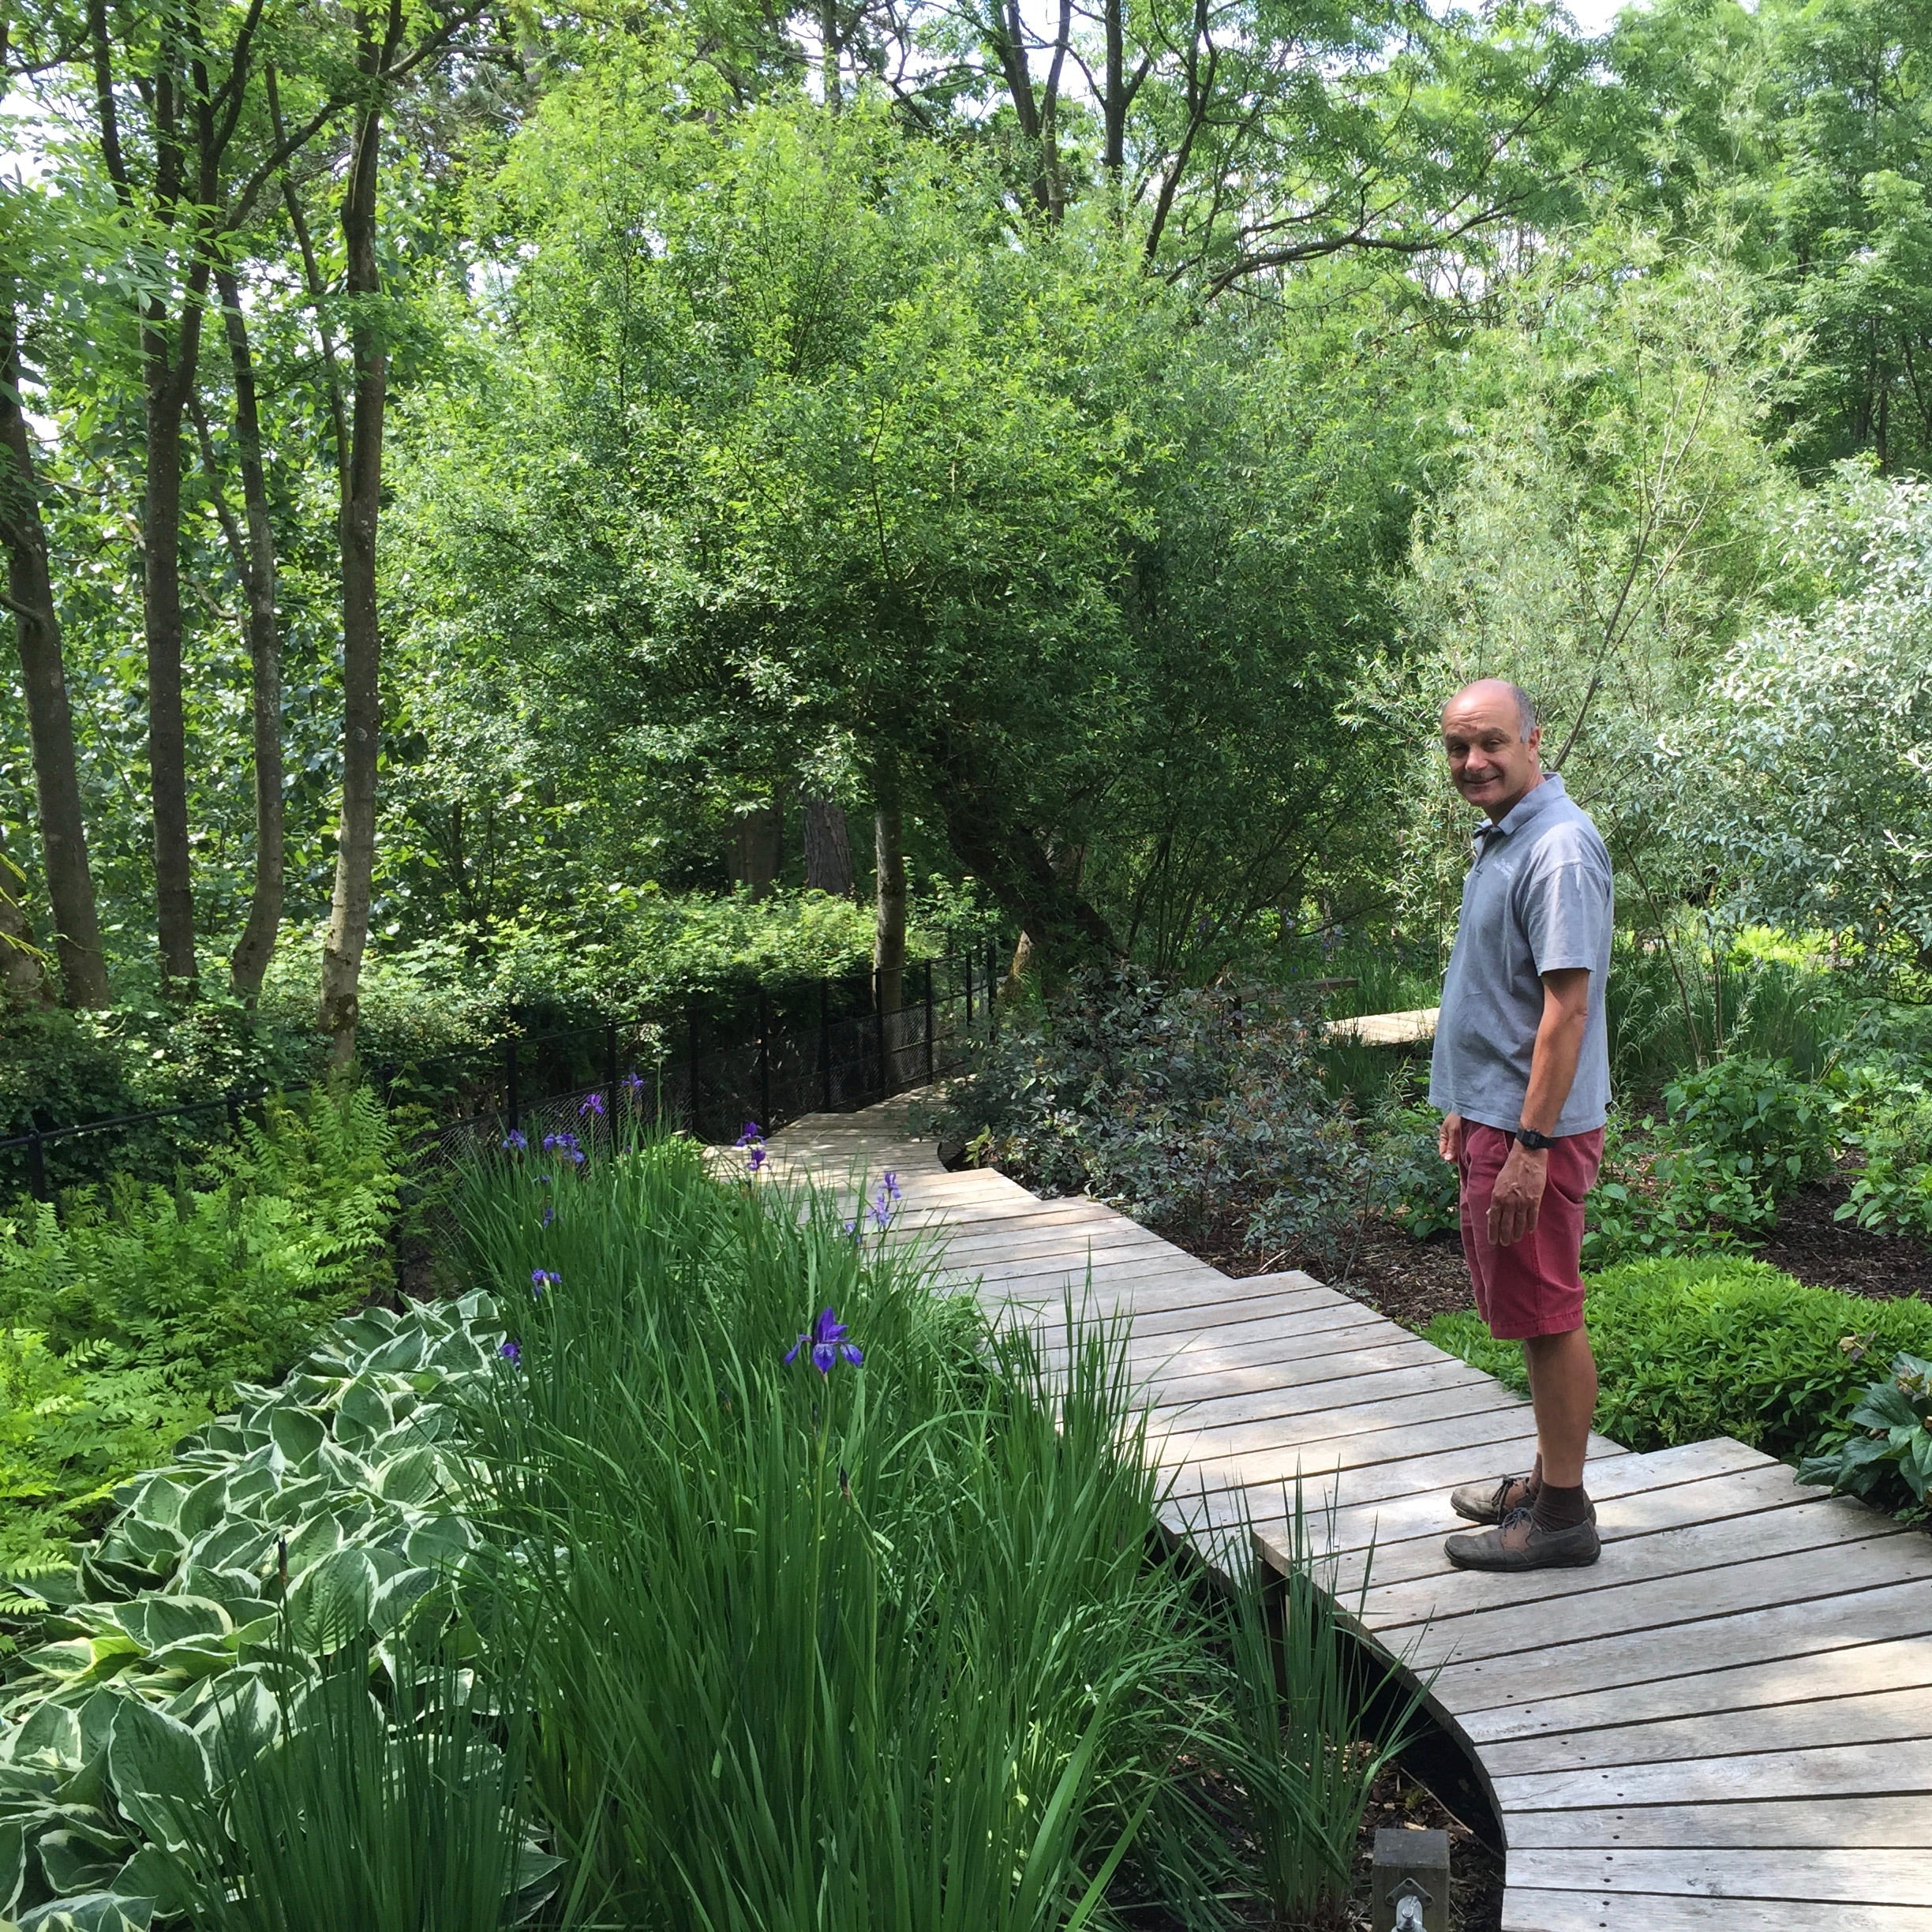 Rob of garden design co ltd on the boardwalk by jo for Garden design company